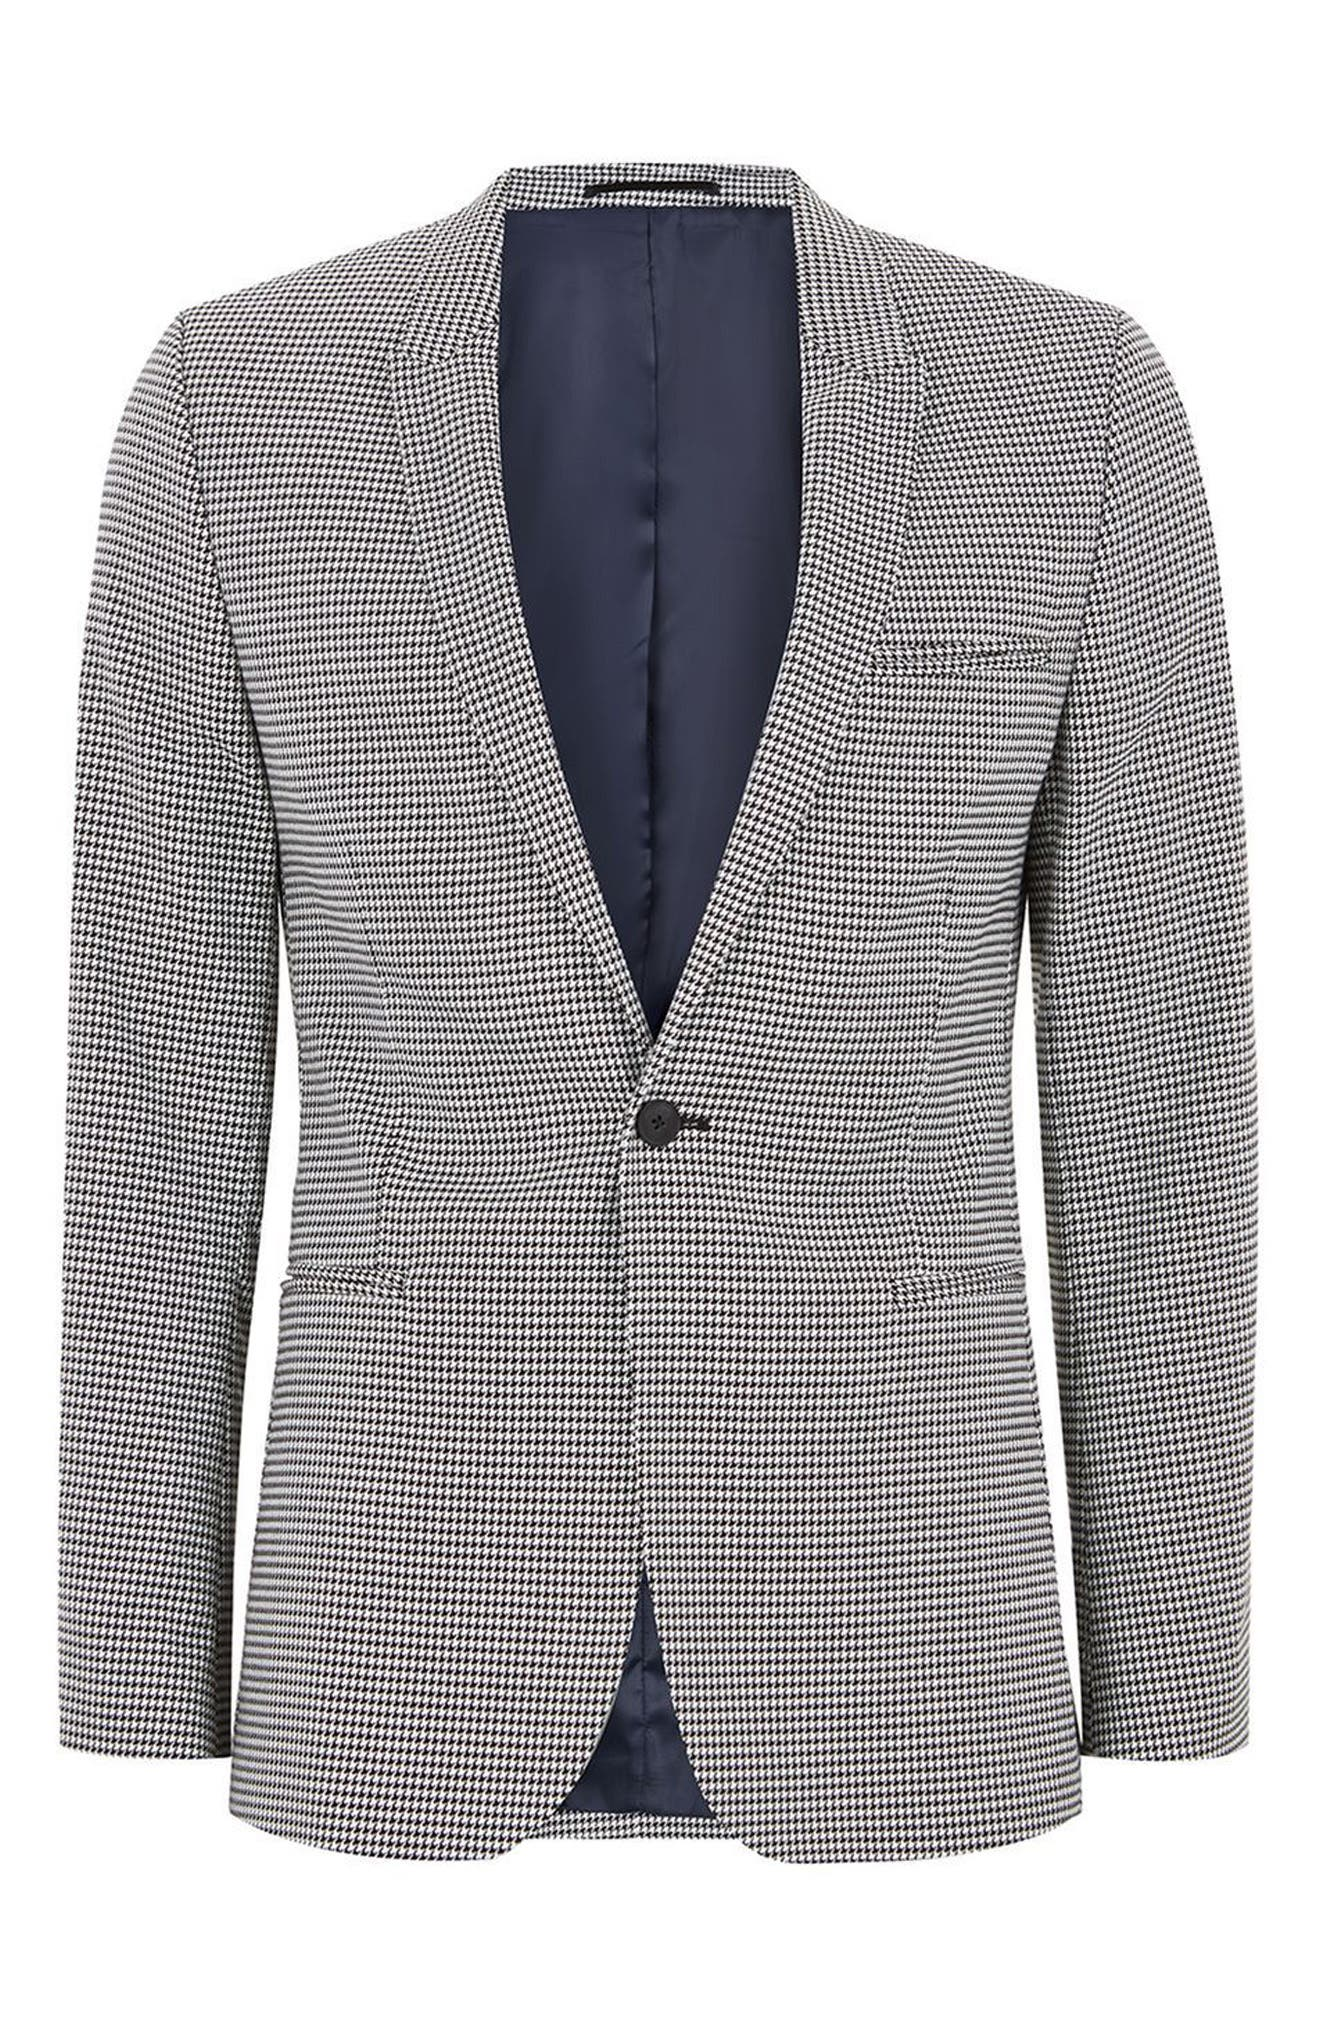 Ultra Skinny Fit Houndstooth Suit Jacket,                             Alternate thumbnail 4, color,                             020